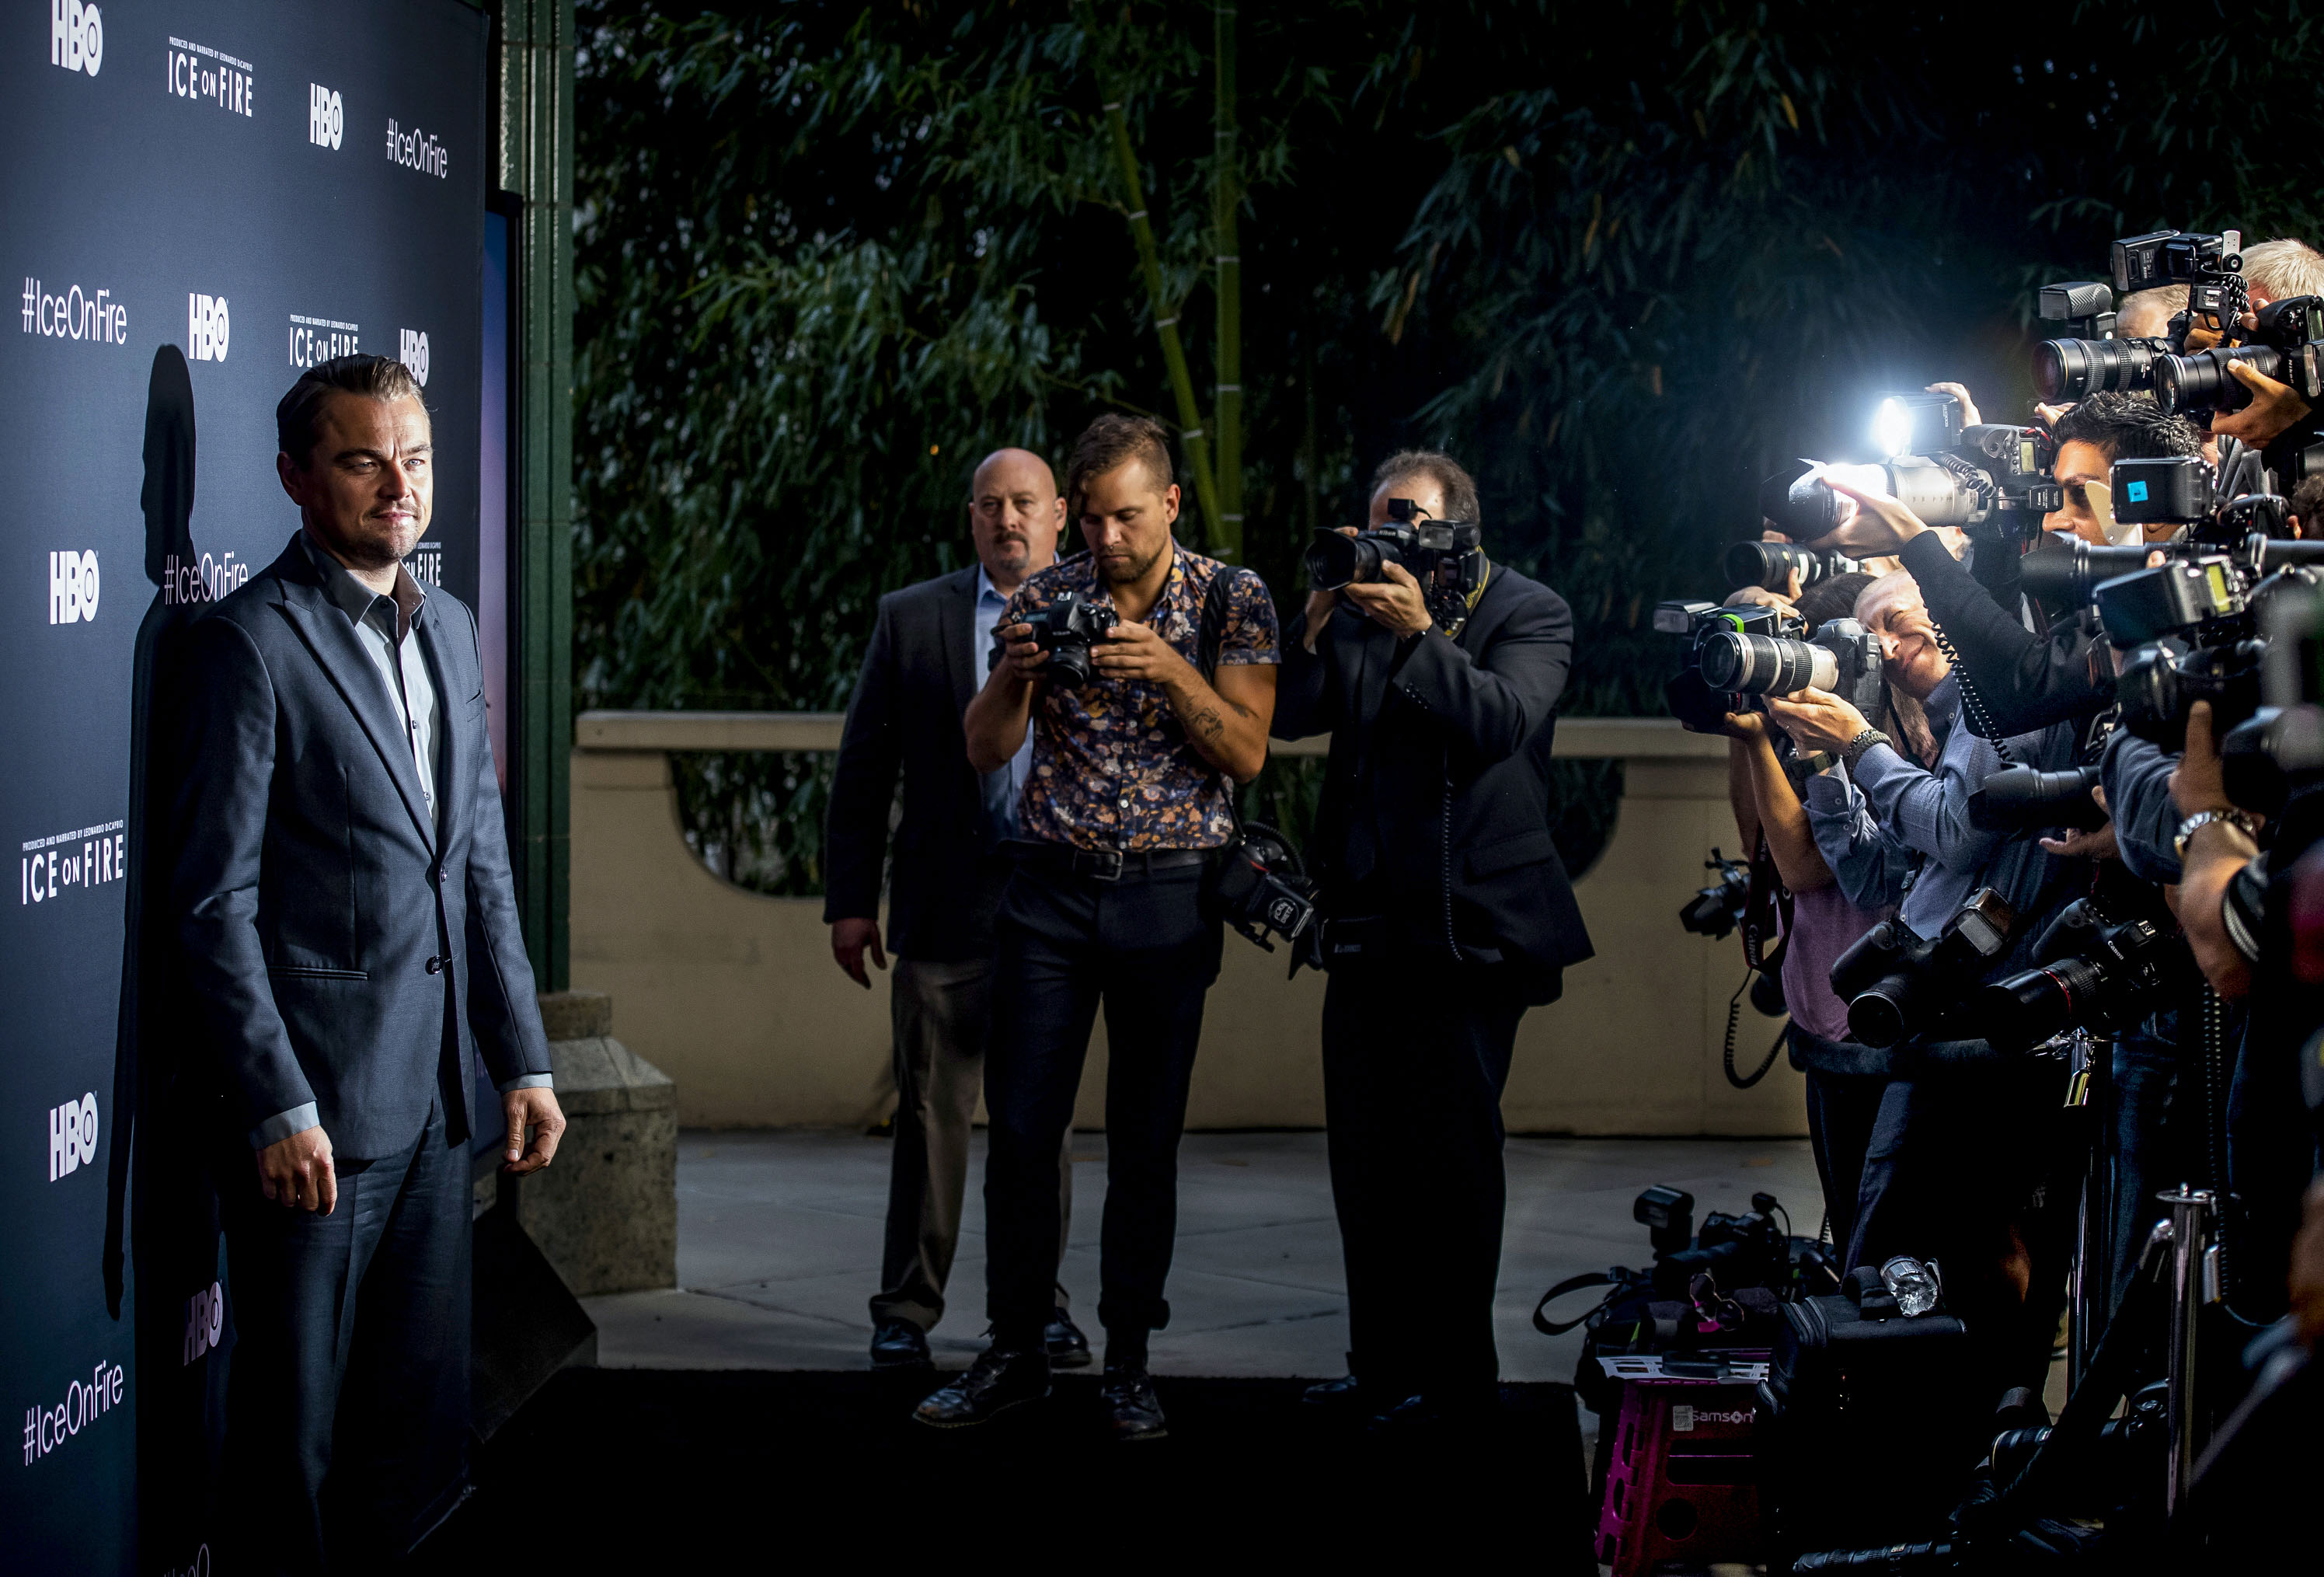 9e9326f982b Narrator and actor Leonardo DiCaprio poses for the media behind the  step-and-repeat during the opening night of the HBO Documentary 'Ice on  Fire' that was ...